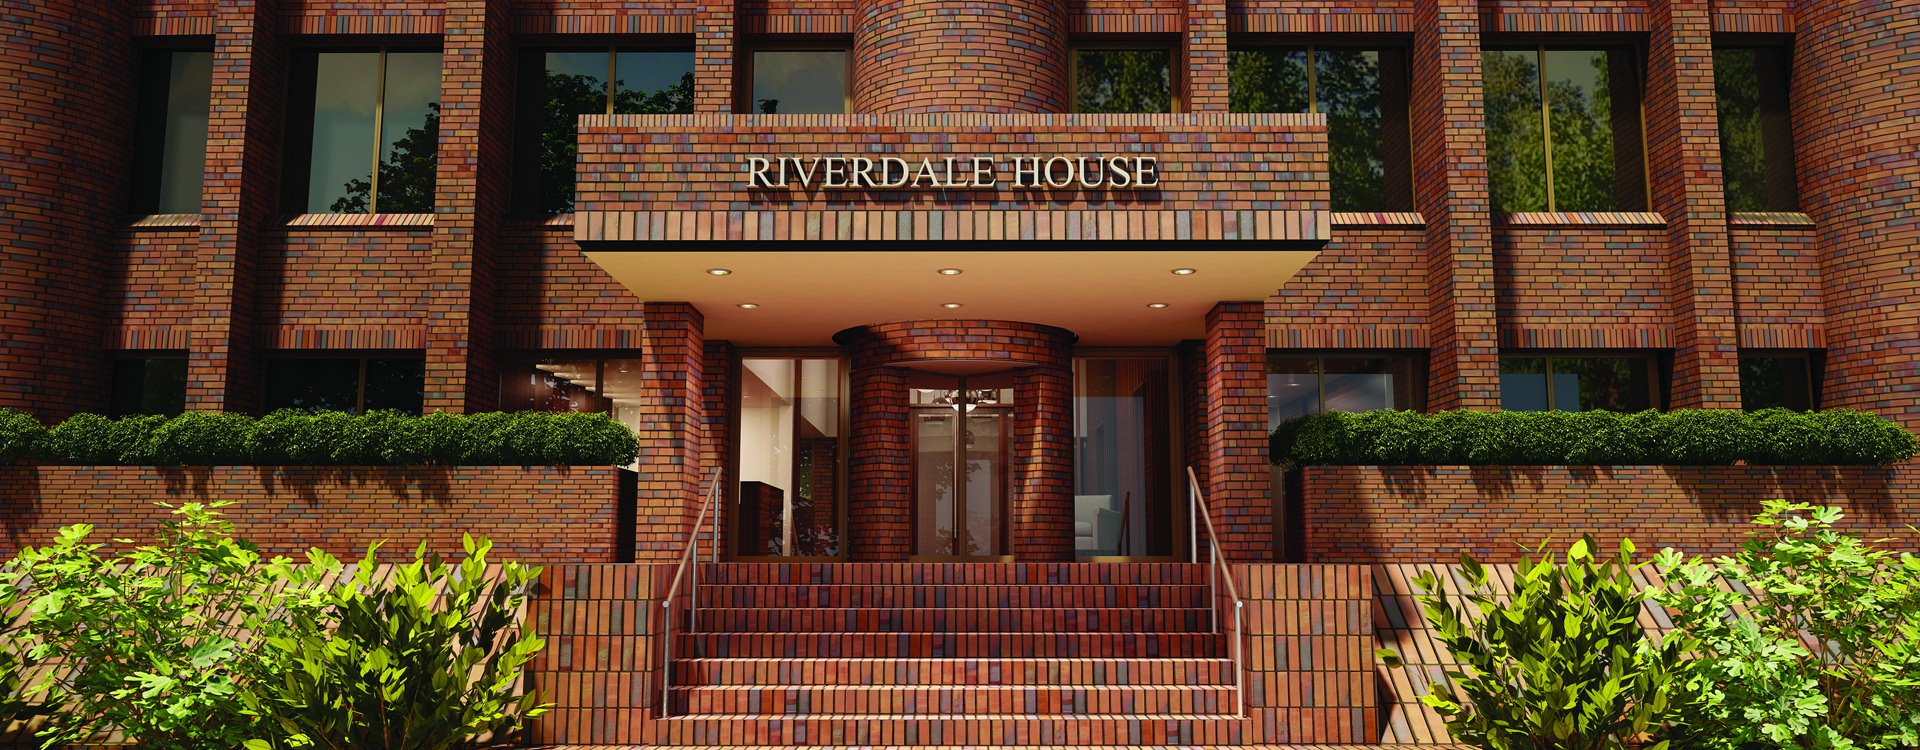 Riverdale House image